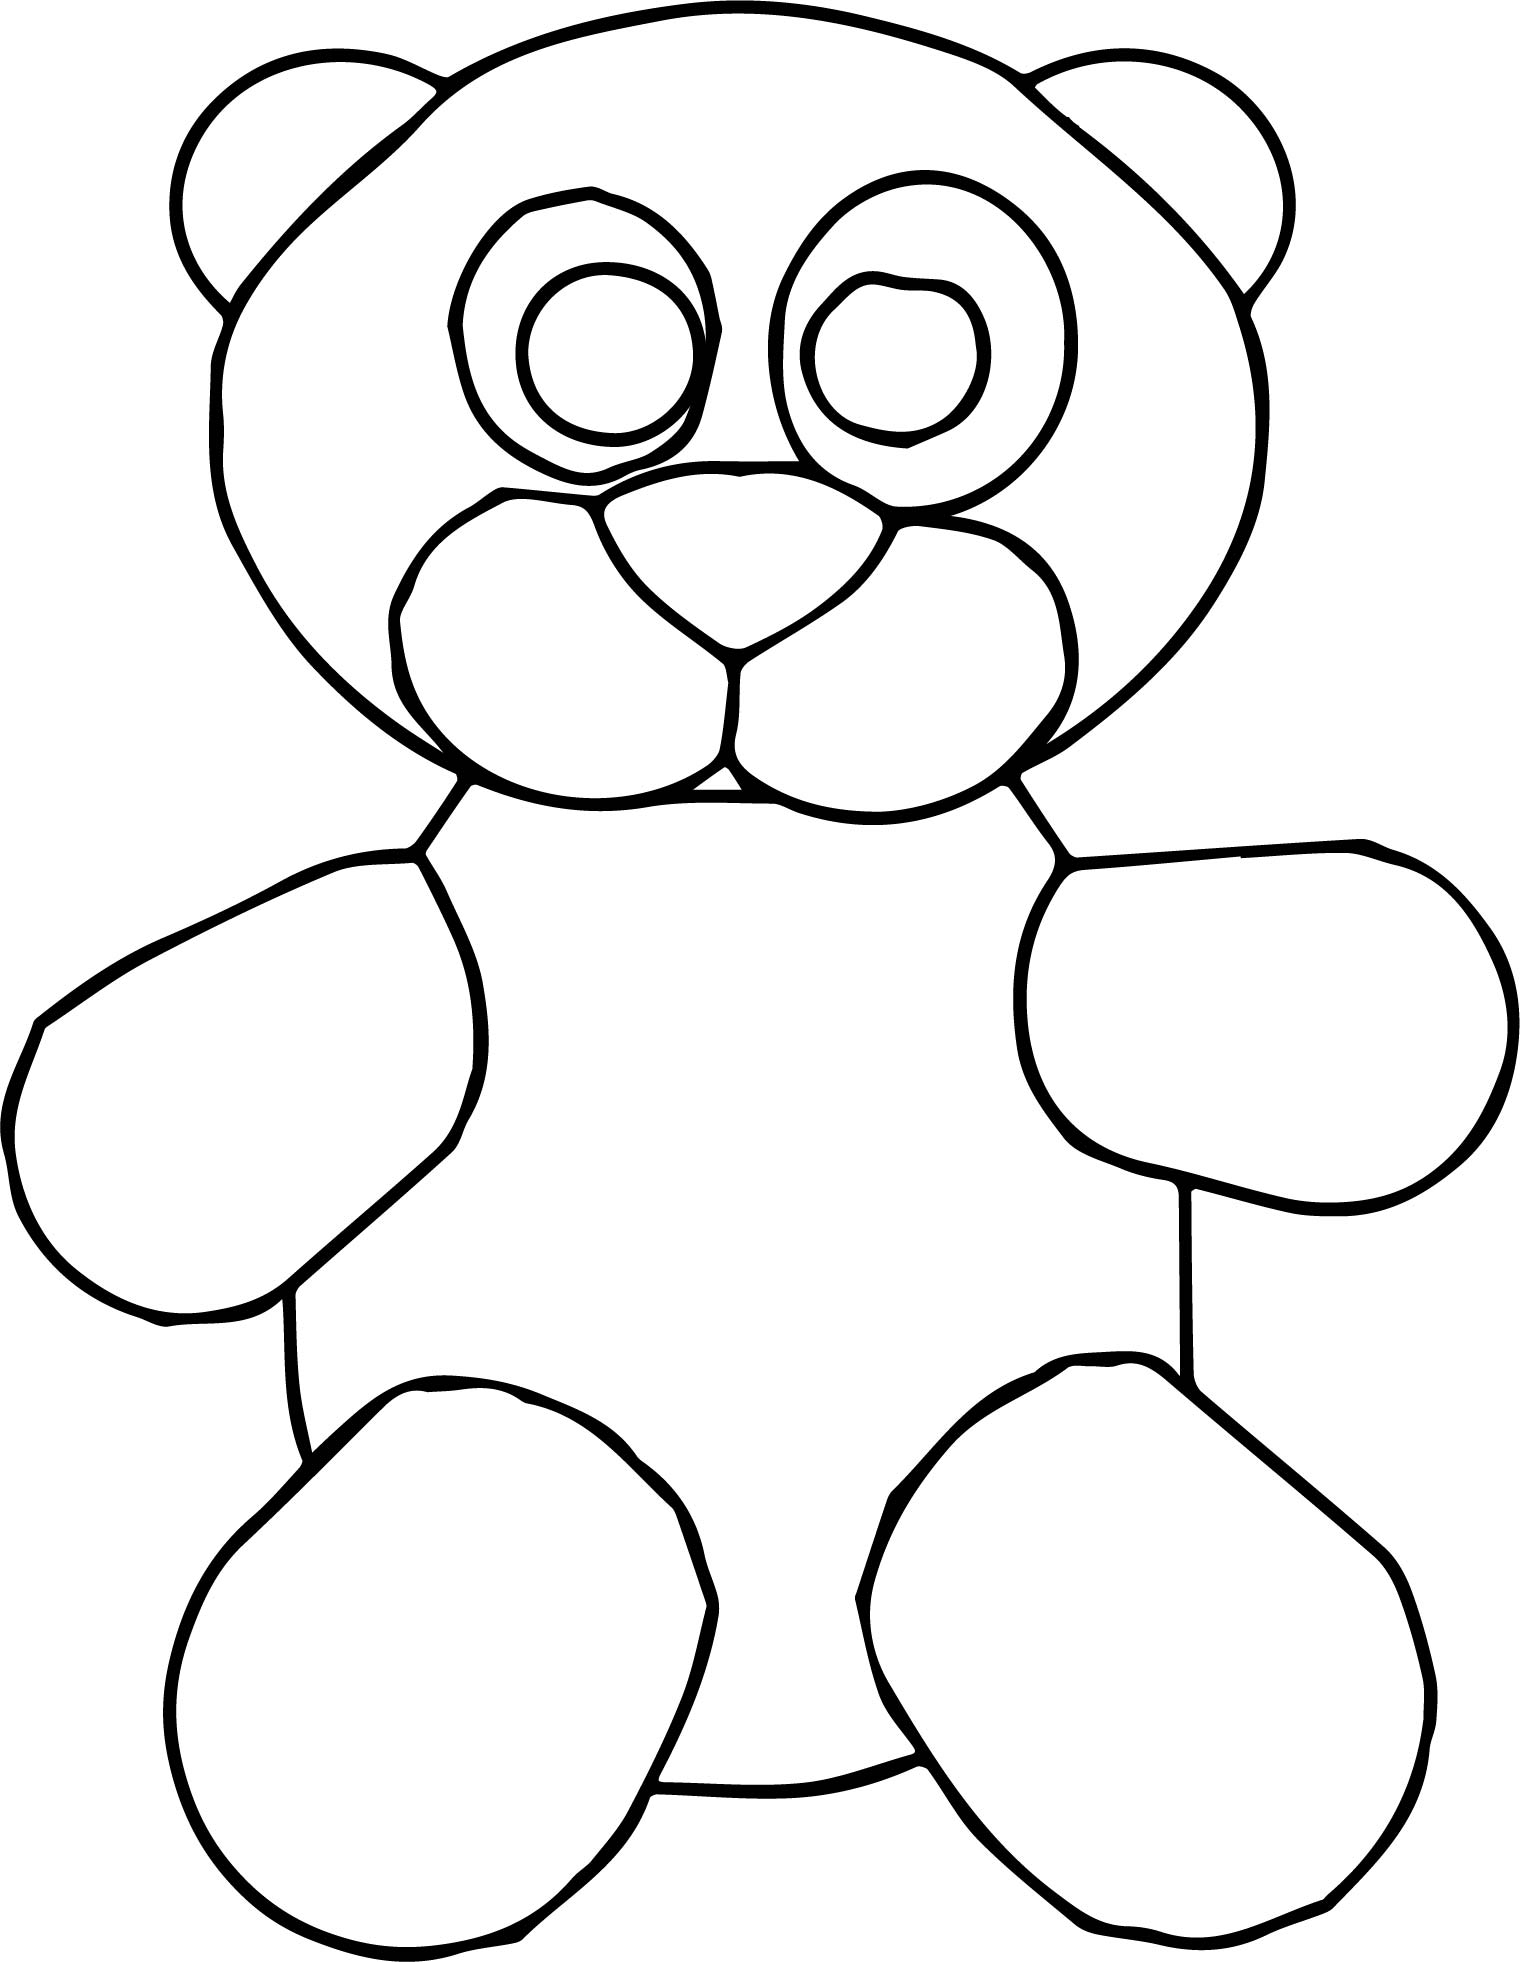 Cute Toy Bear Cartoon Coloring Page